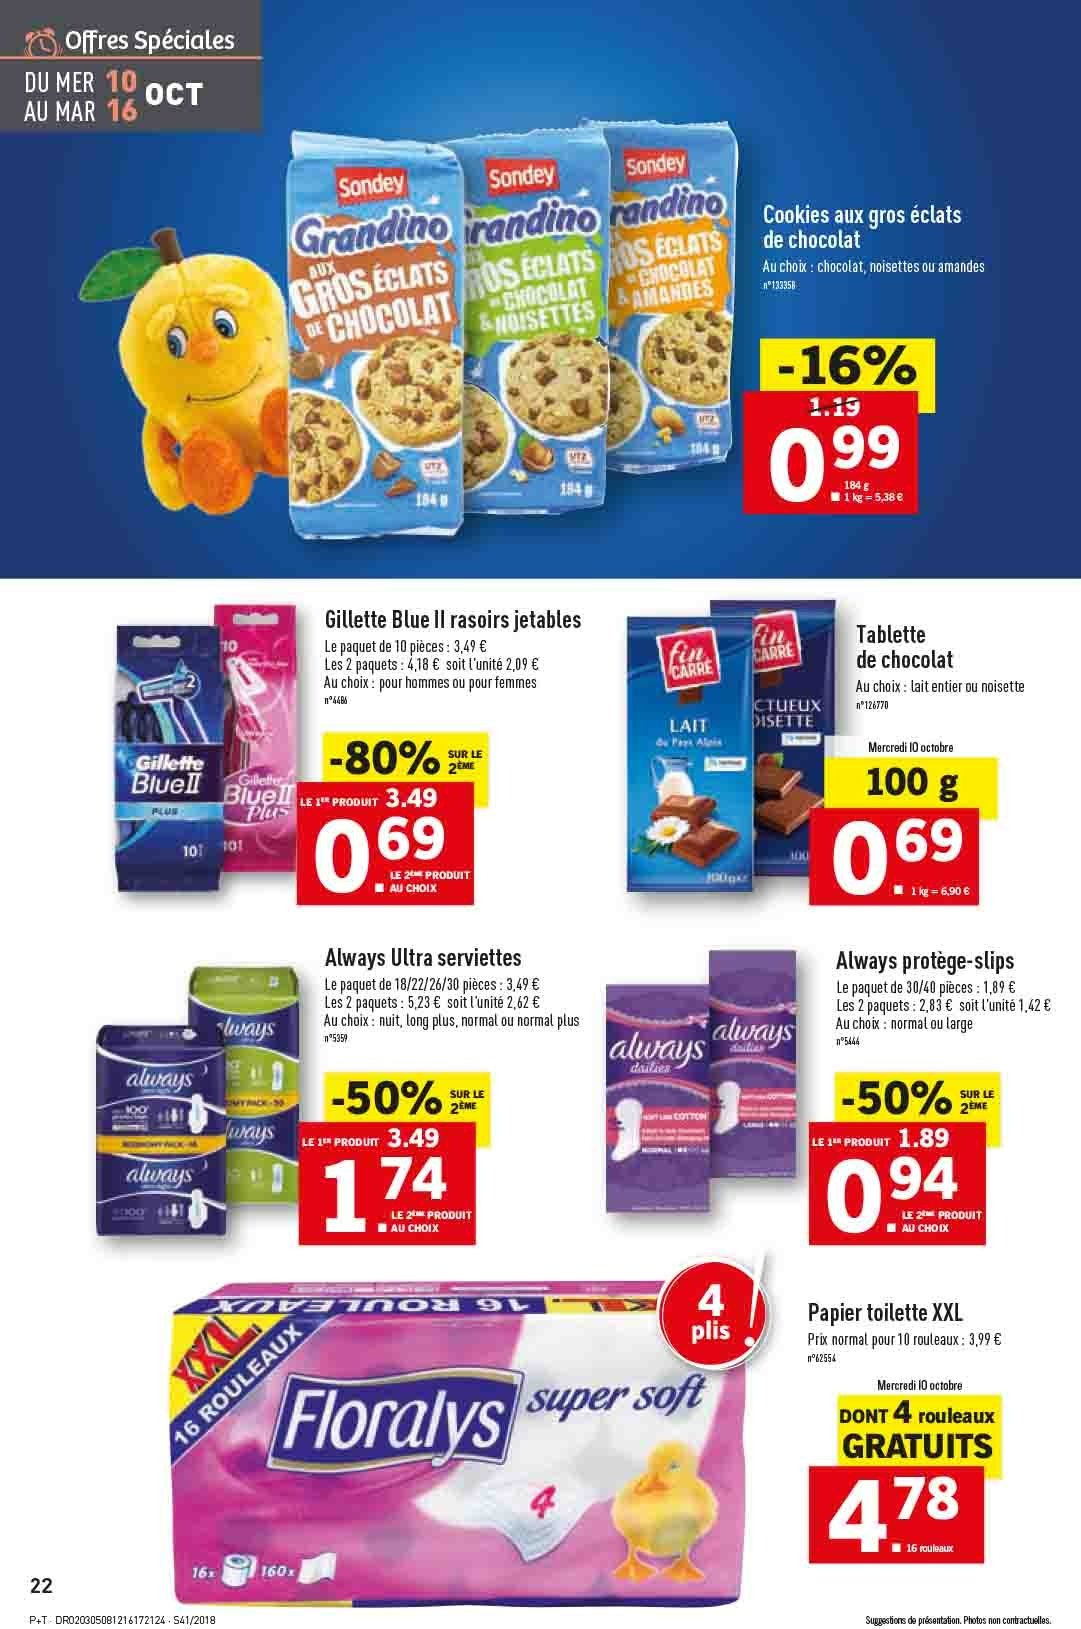 Catalogue Lidl - 10.10.2018 - 16.10.2018. Page 22.